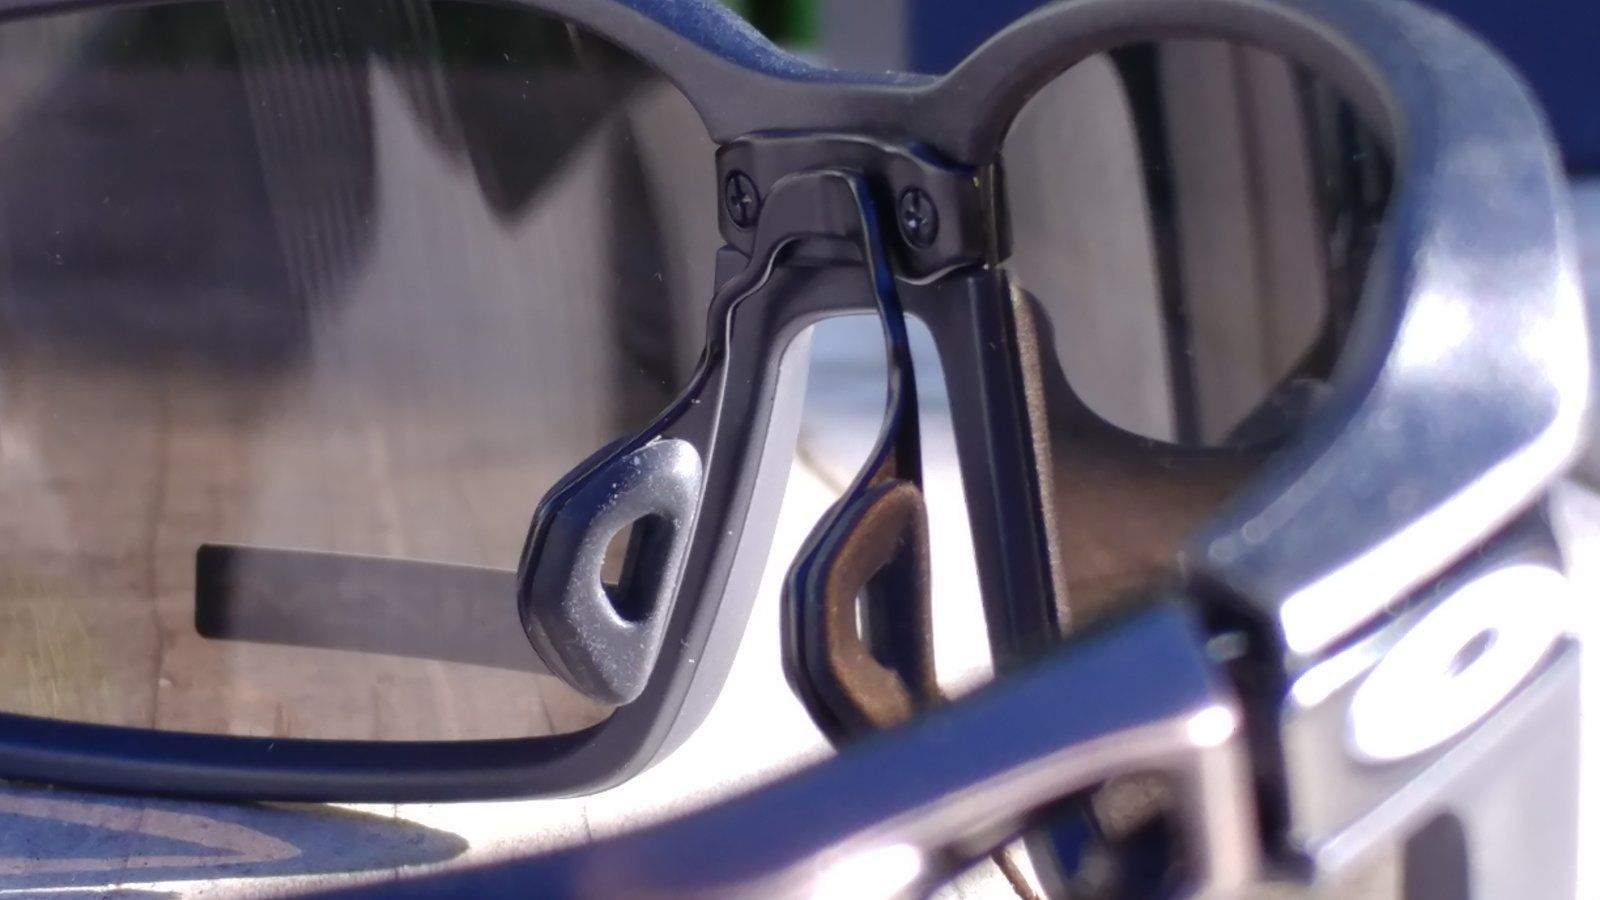 Oakley Carbon Prime Sunglasses from behind